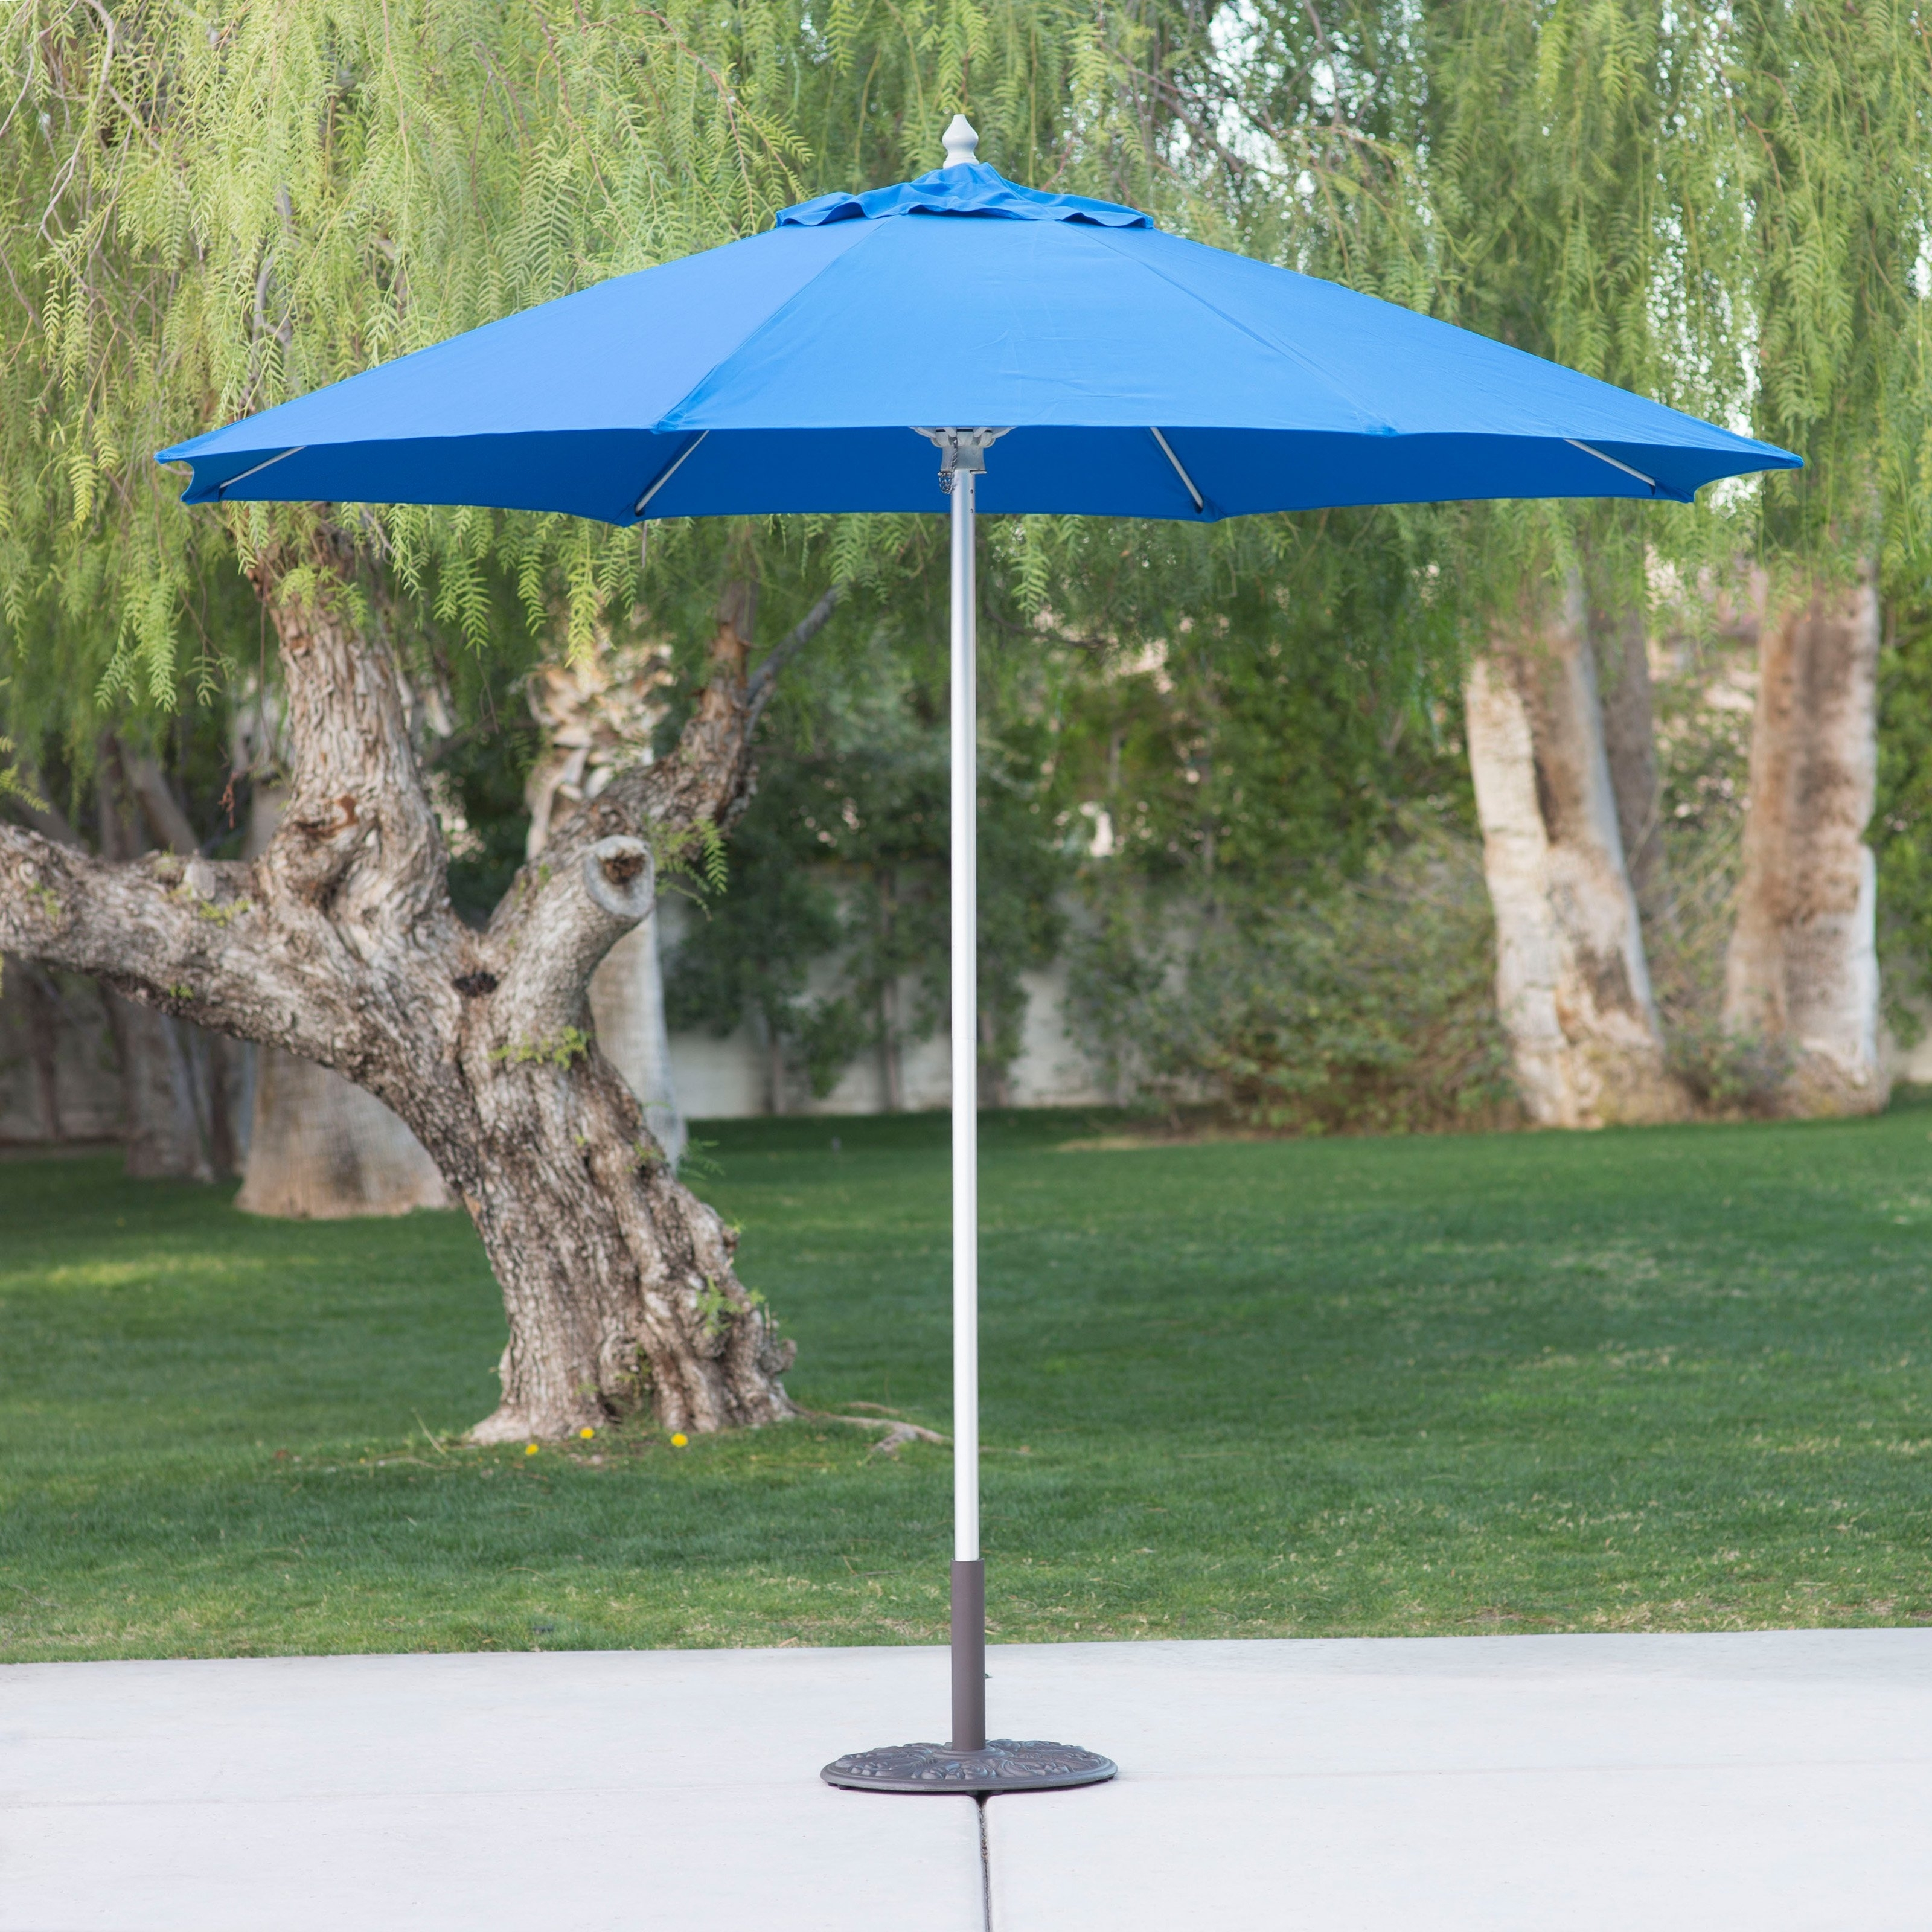 2018 Patio Umbrellas For Windy Locations With Regard To Belham Living 9 Ft. Sunbrella Commercial Aluminum Wind Resistant (Gallery 13 of 20)